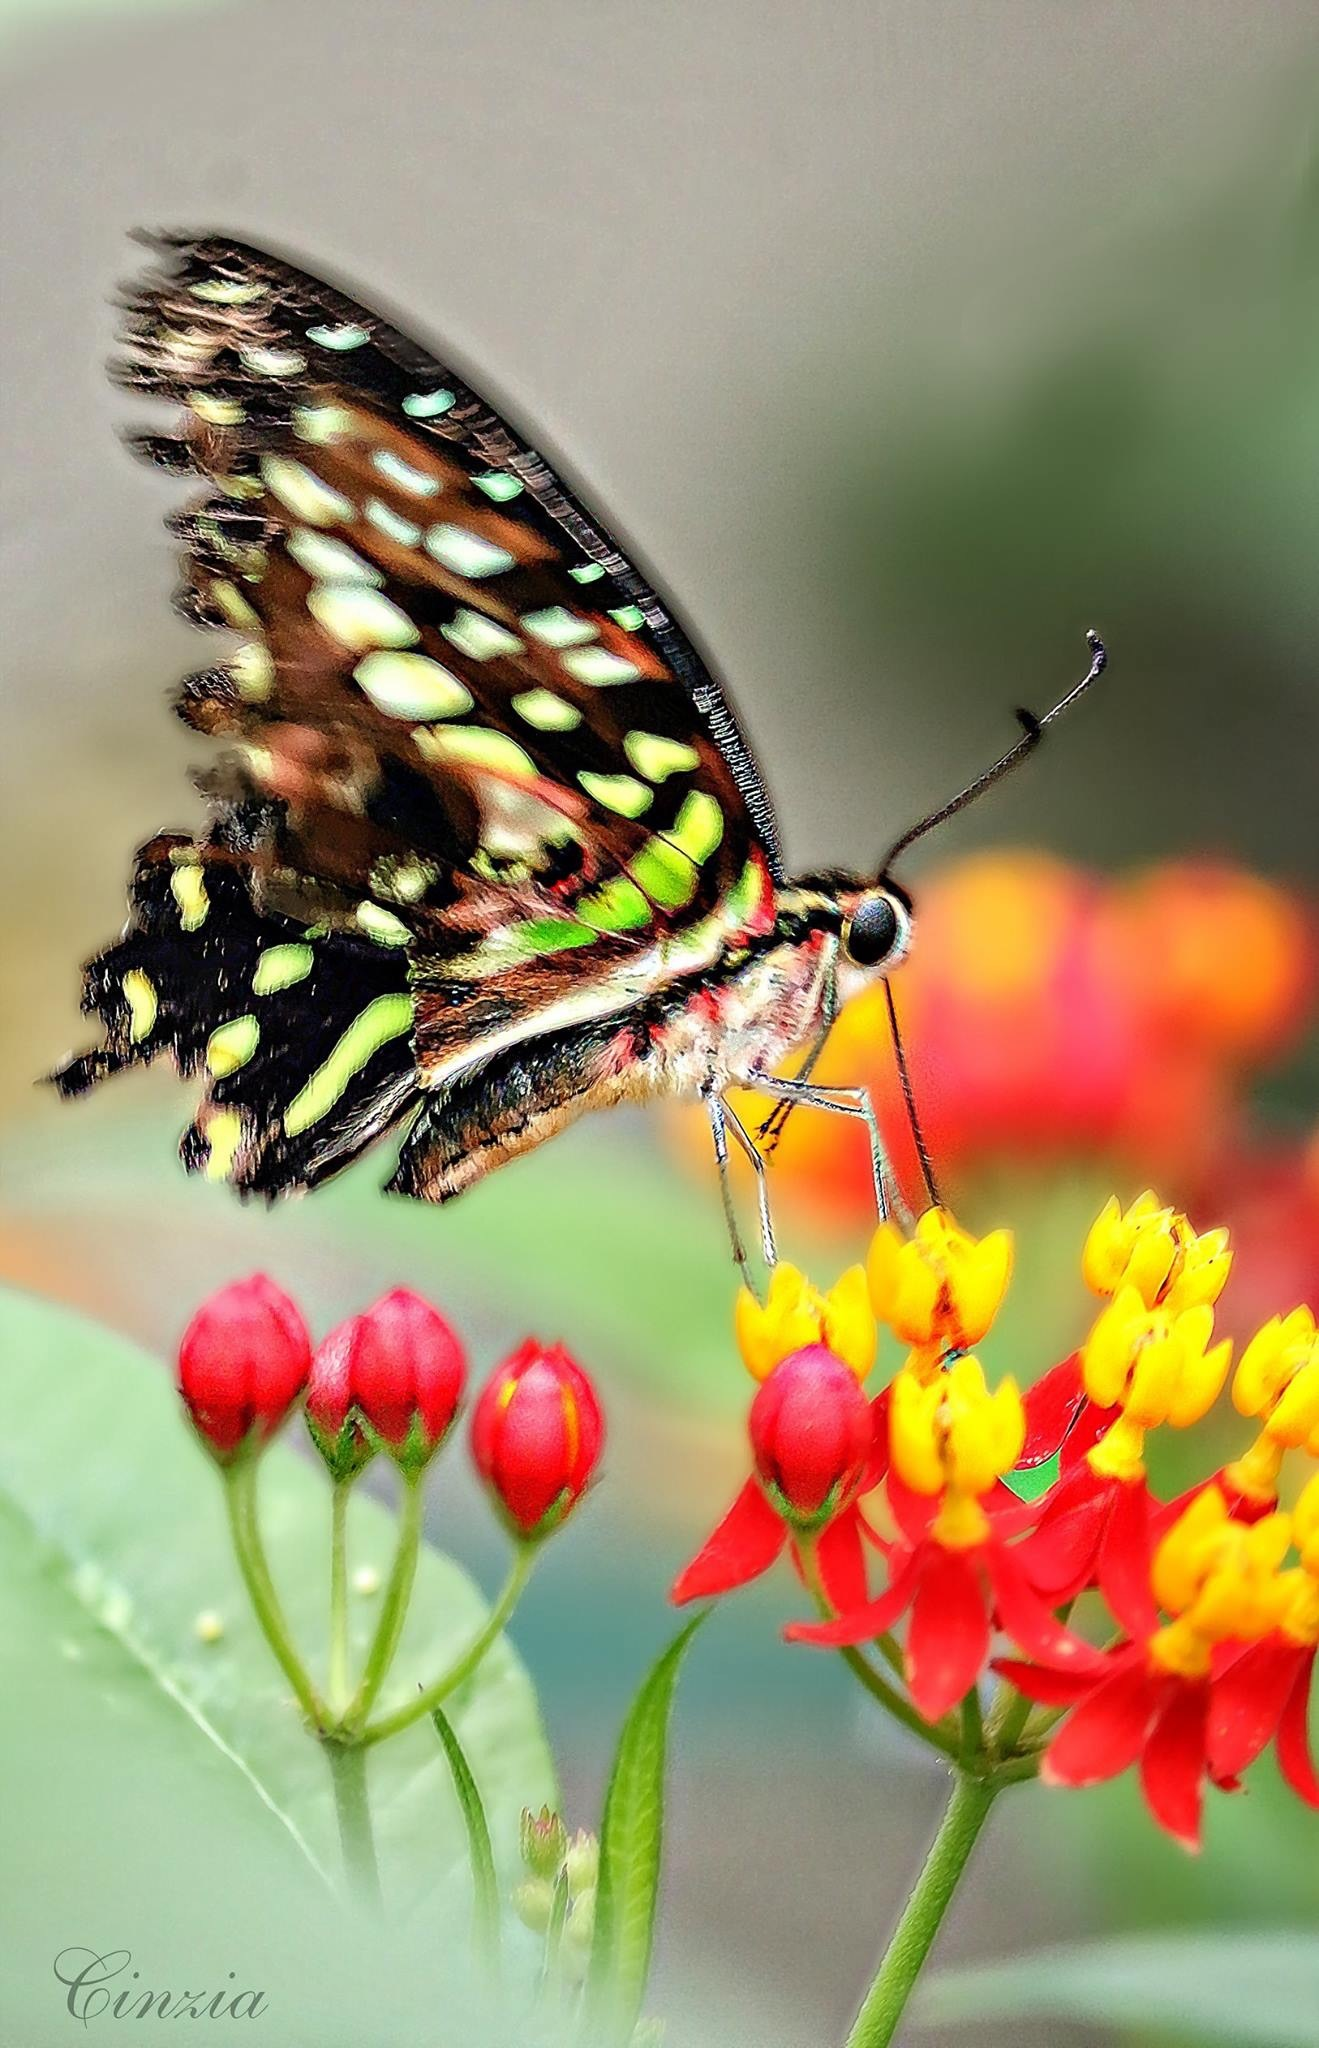 Painted lady in motion by Cynthia Magliocco  by cynthiasignaturephoto